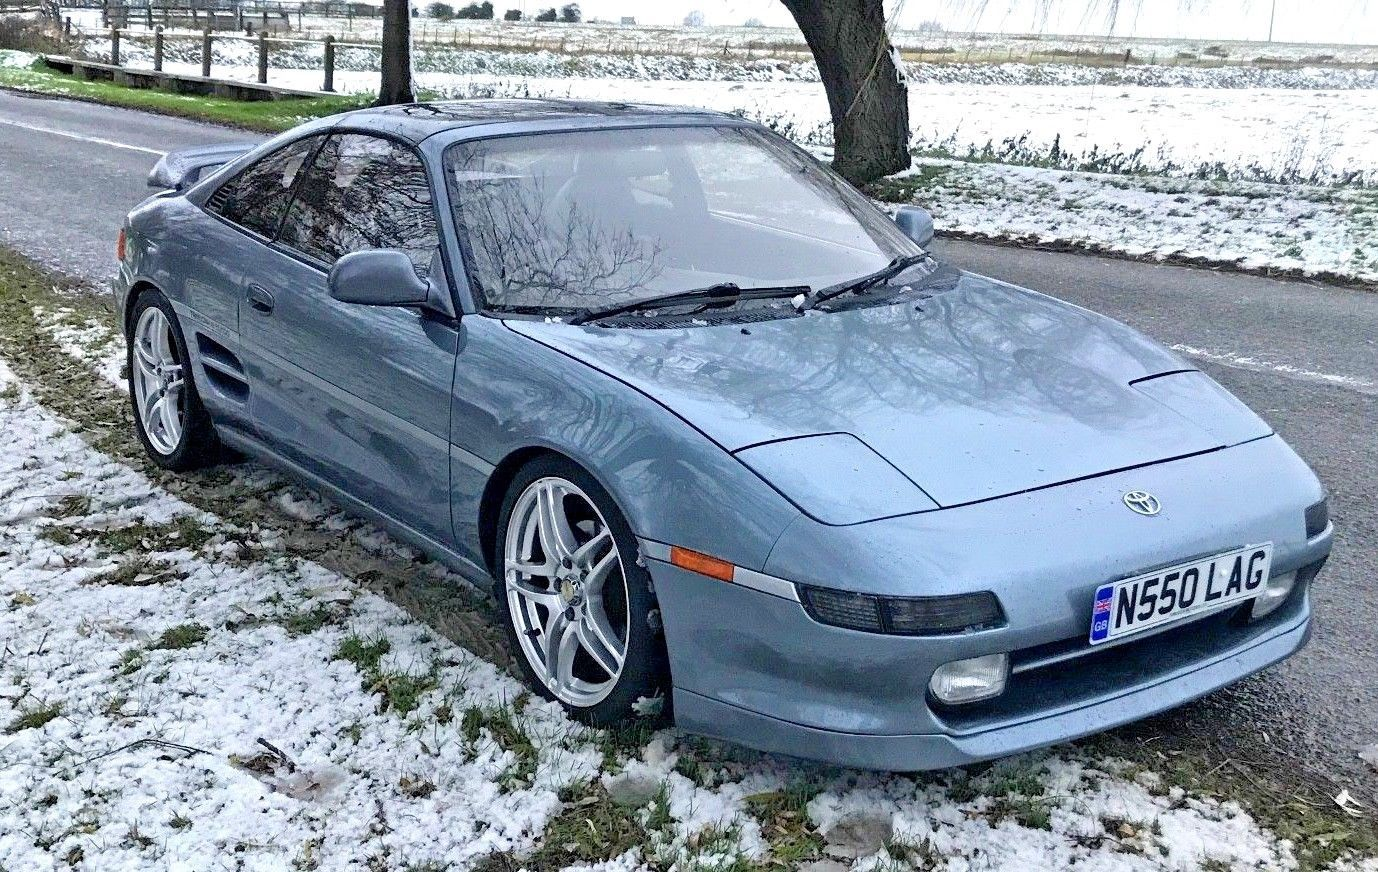 Toyota Mr2 Turbo Revision 3 Gt T-bar